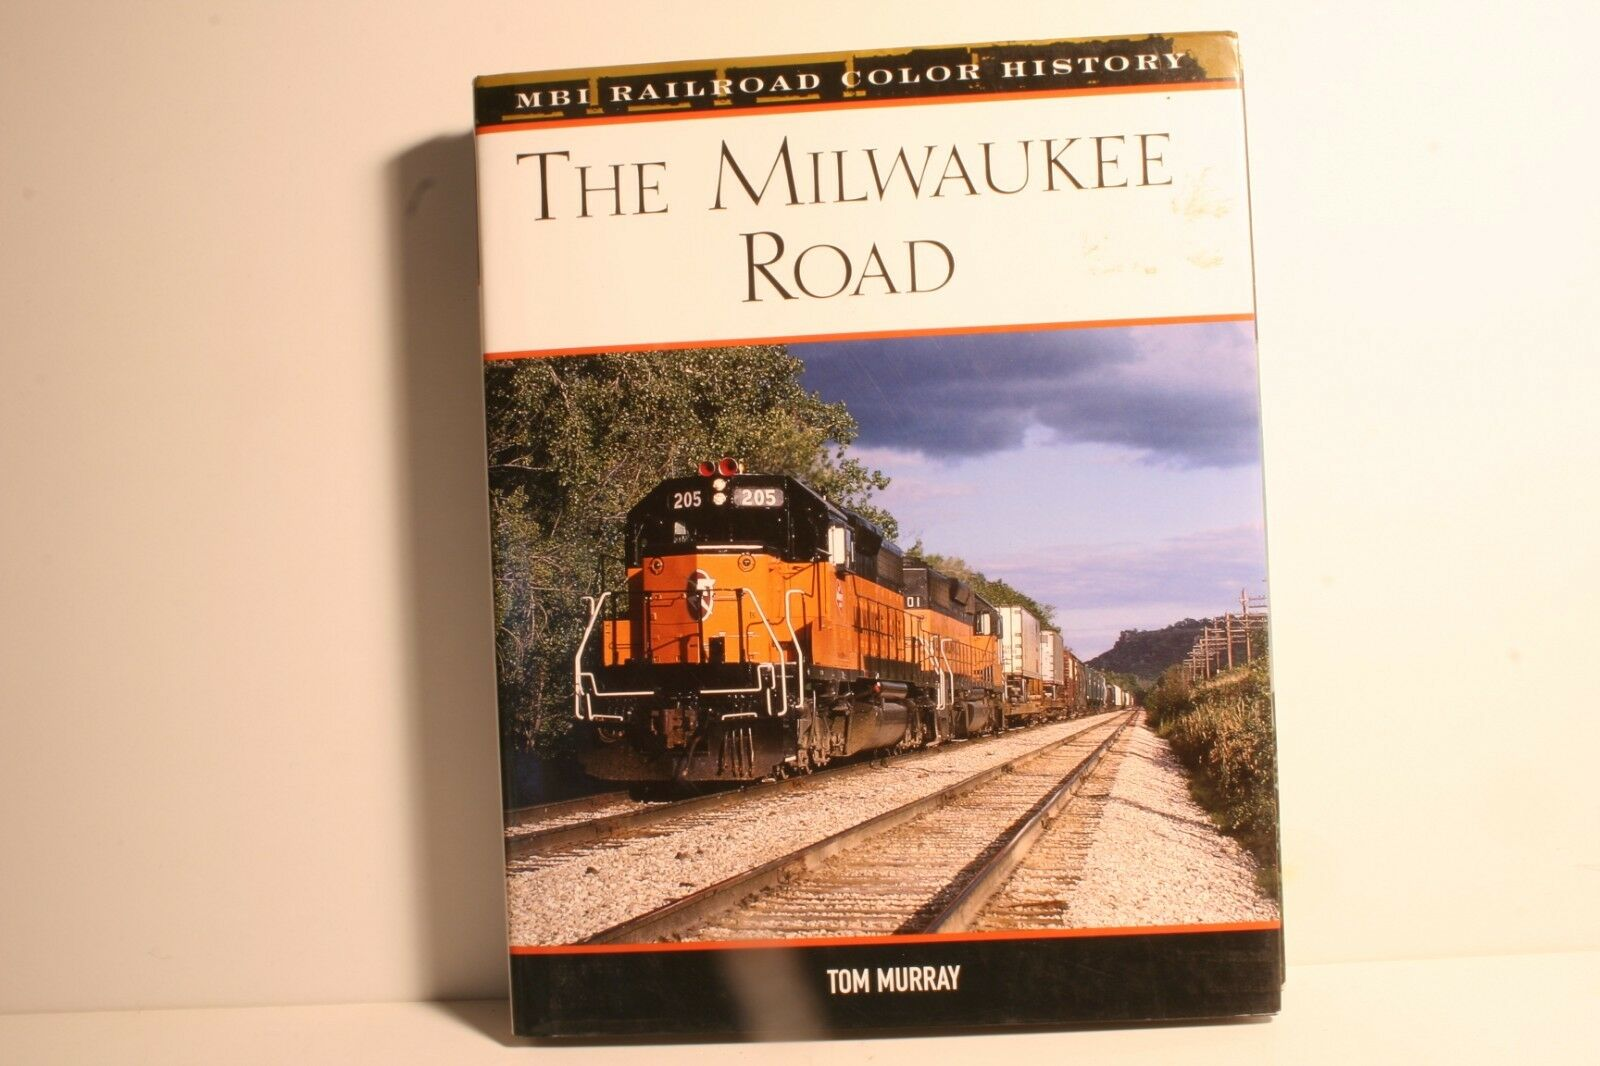 The Milwaukee Road by Tom Murray MBI Railroad Color History Hardcover